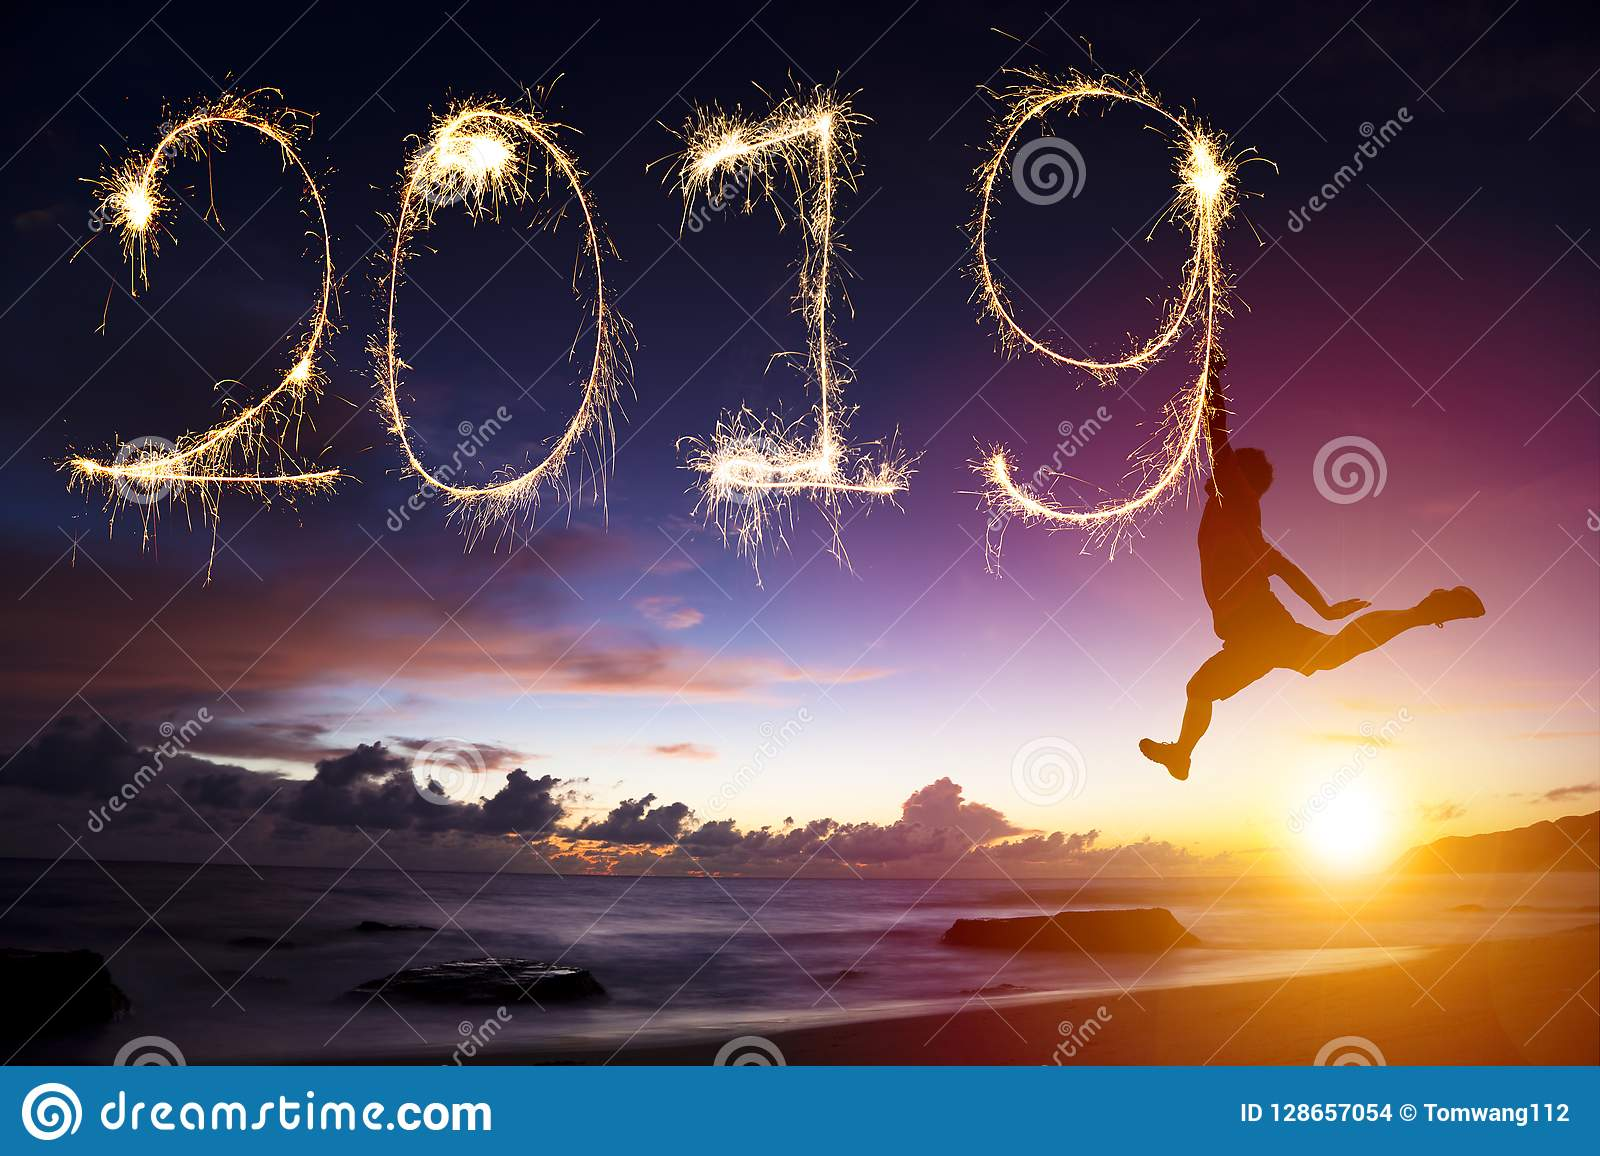 new year 2019. man jumping and drawing on beach